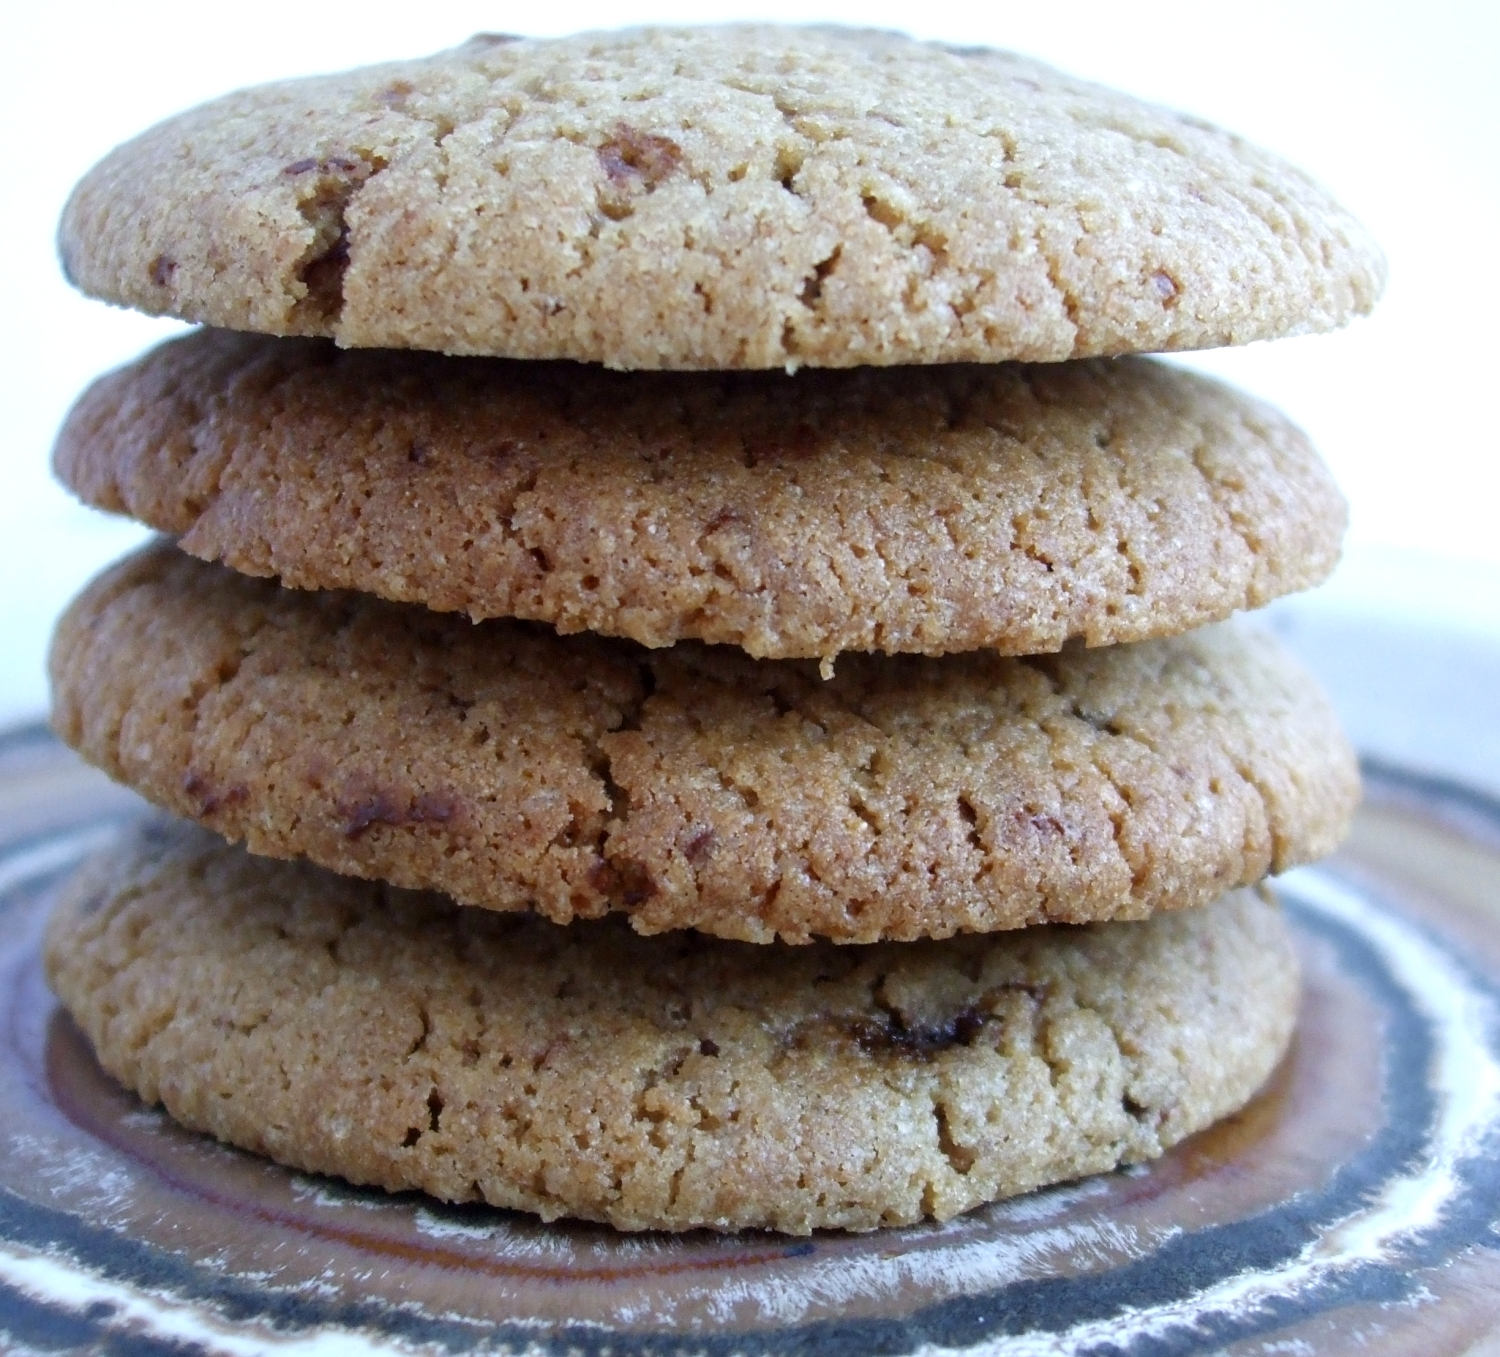 Happily Wholemeal Choc Chip Cookies